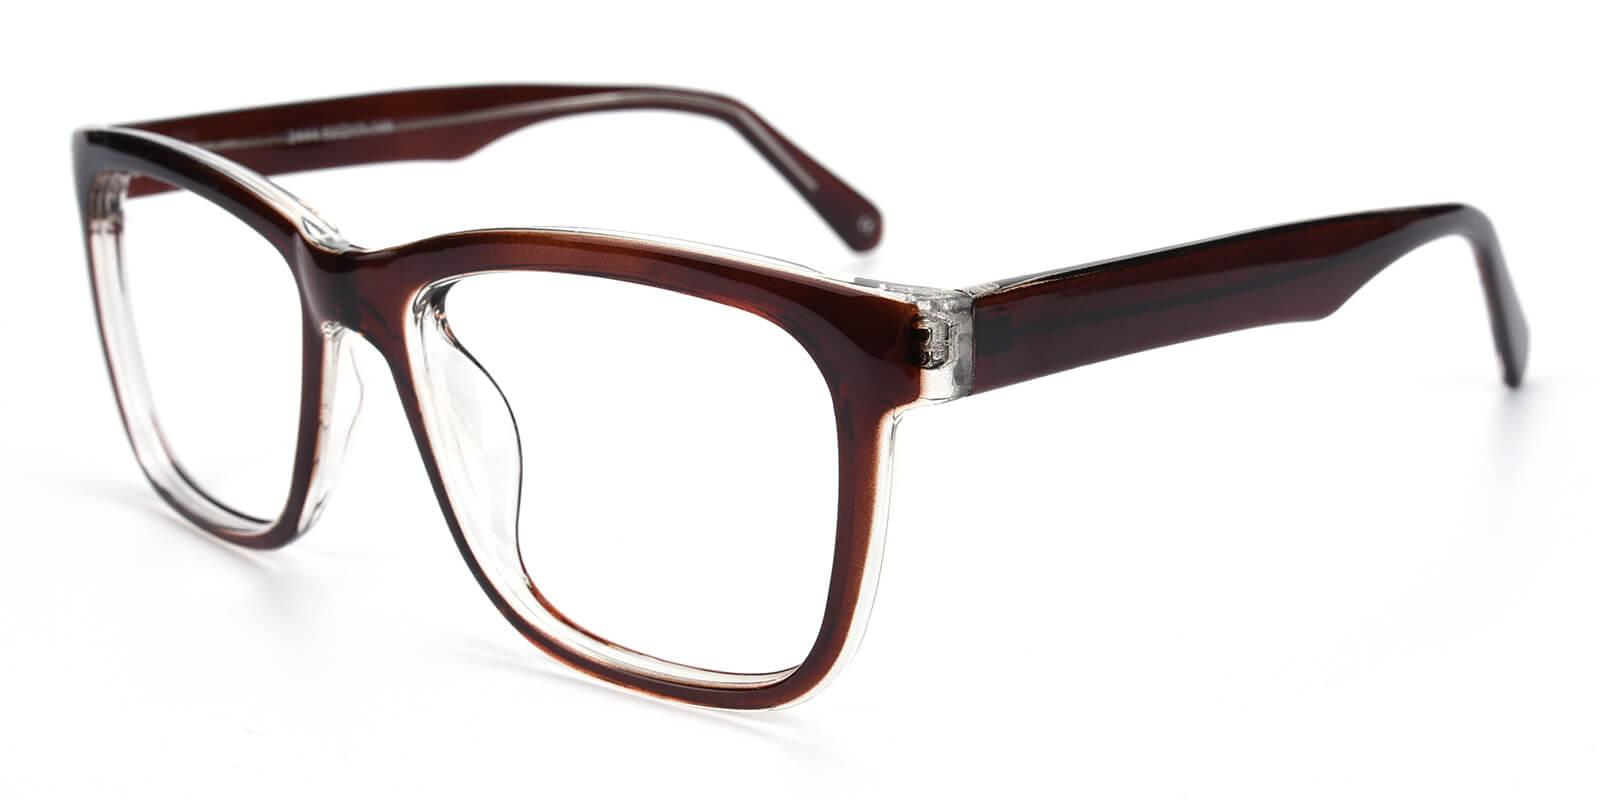 Colaan-Brown-Square-Plastic-Eyeglasses-additional1